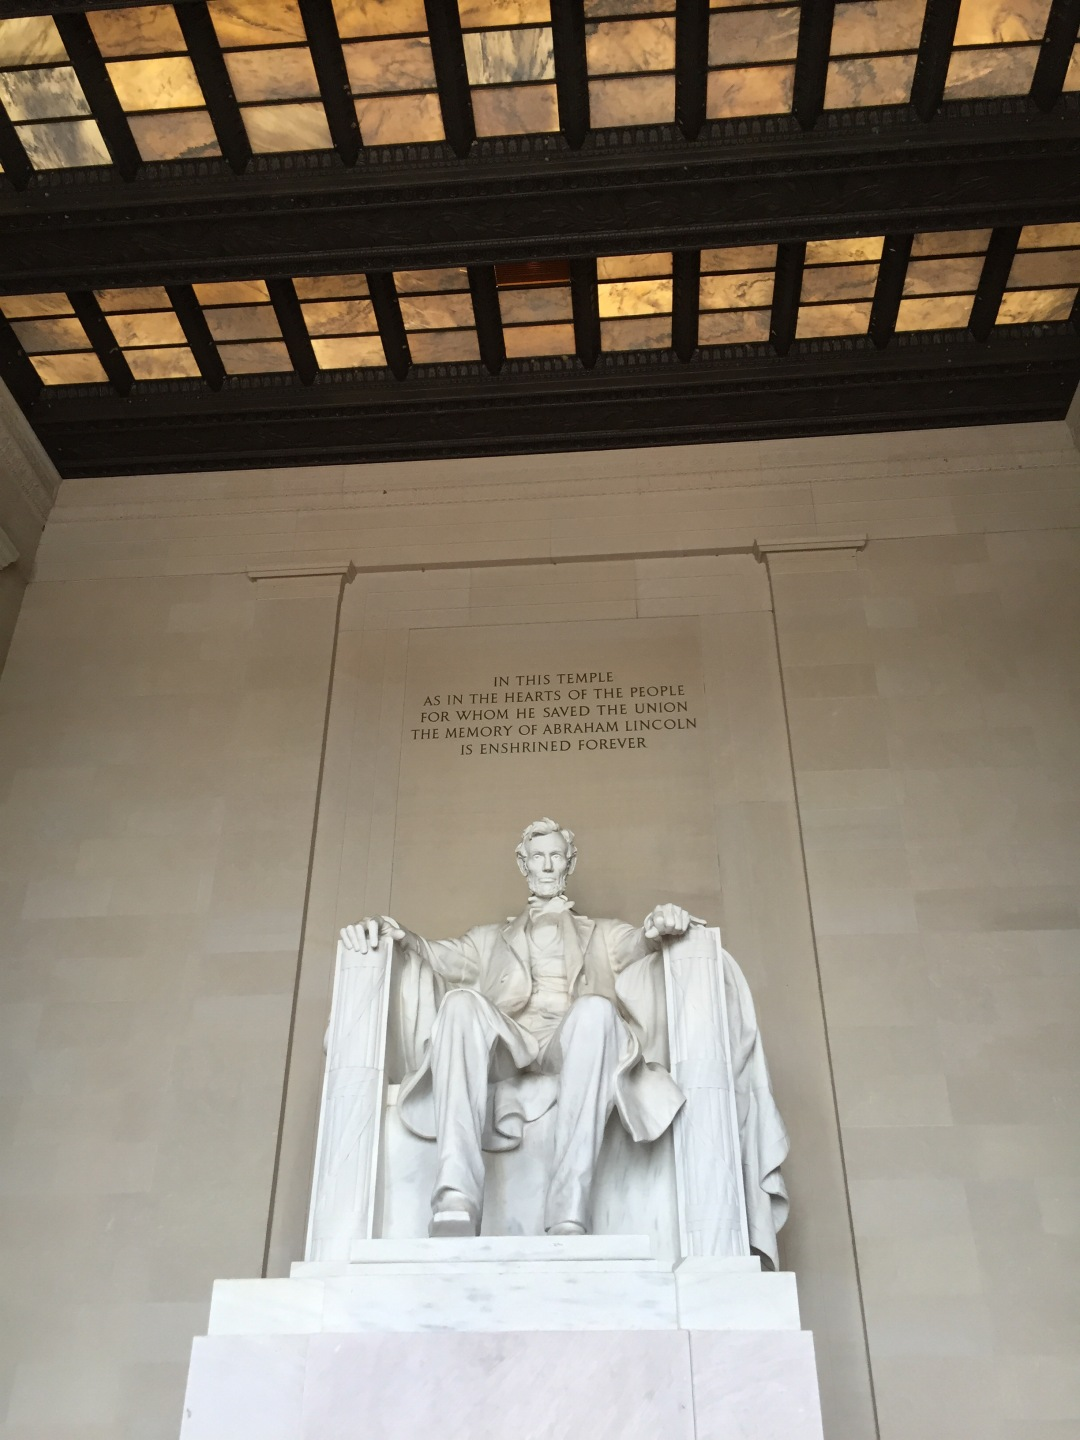 the Lincoln Memorial in DC